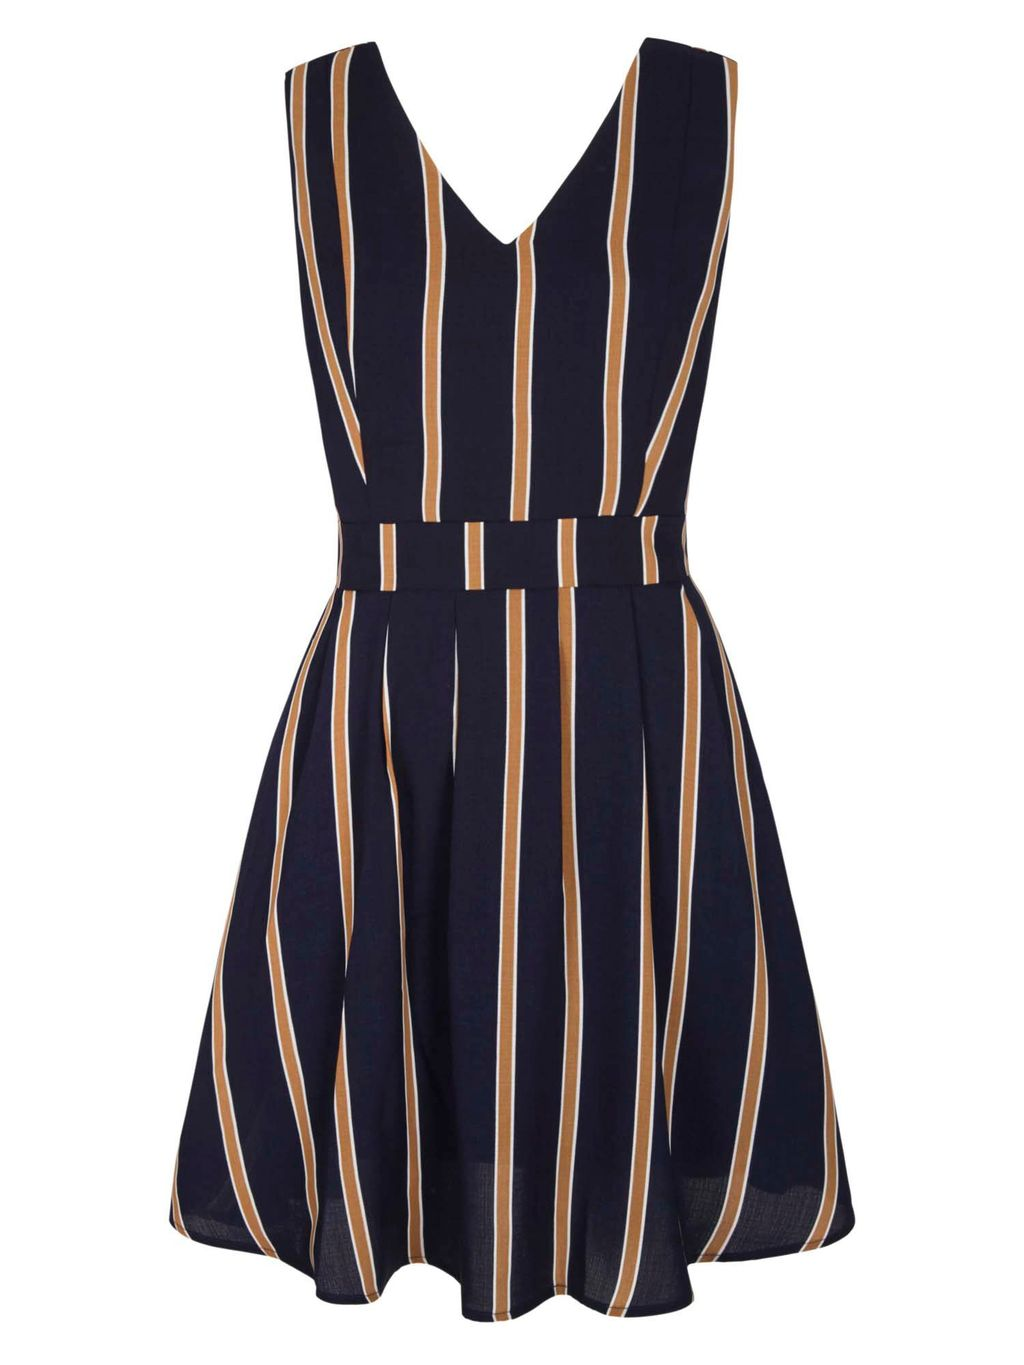 Vertical Stripe Skater Dress, Navy - neckline: low v-neck; pattern: vertical stripes; sleeve style: sleeveless; waist detail: fitted waist; predominant colour: navy; secondary colour: camel; occasions: casual; length: just above the knee; fit: fitted at waist & bust; style: fit & flare; fibres: polyester/polyamide - 100%; sleeve length: sleeveless; pattern type: fabric; pattern size: standard; texture group: other - light to midweight; season: s/s 2016; wardrobe: highlight